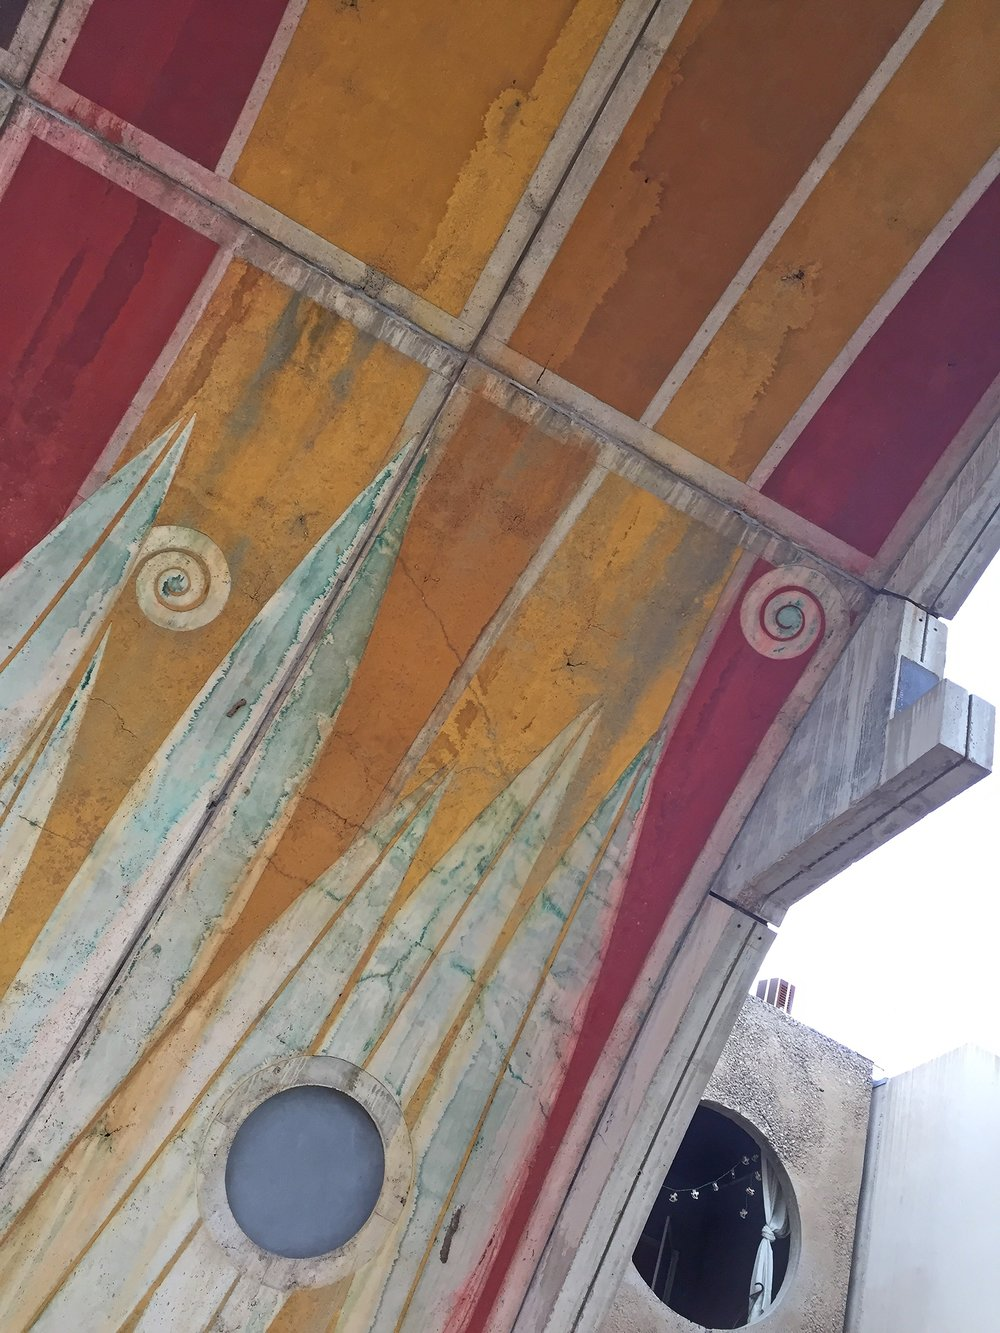 Pigment applied to concrete formwork provides lasting, integral color to massive vaults that provide shade in summer months